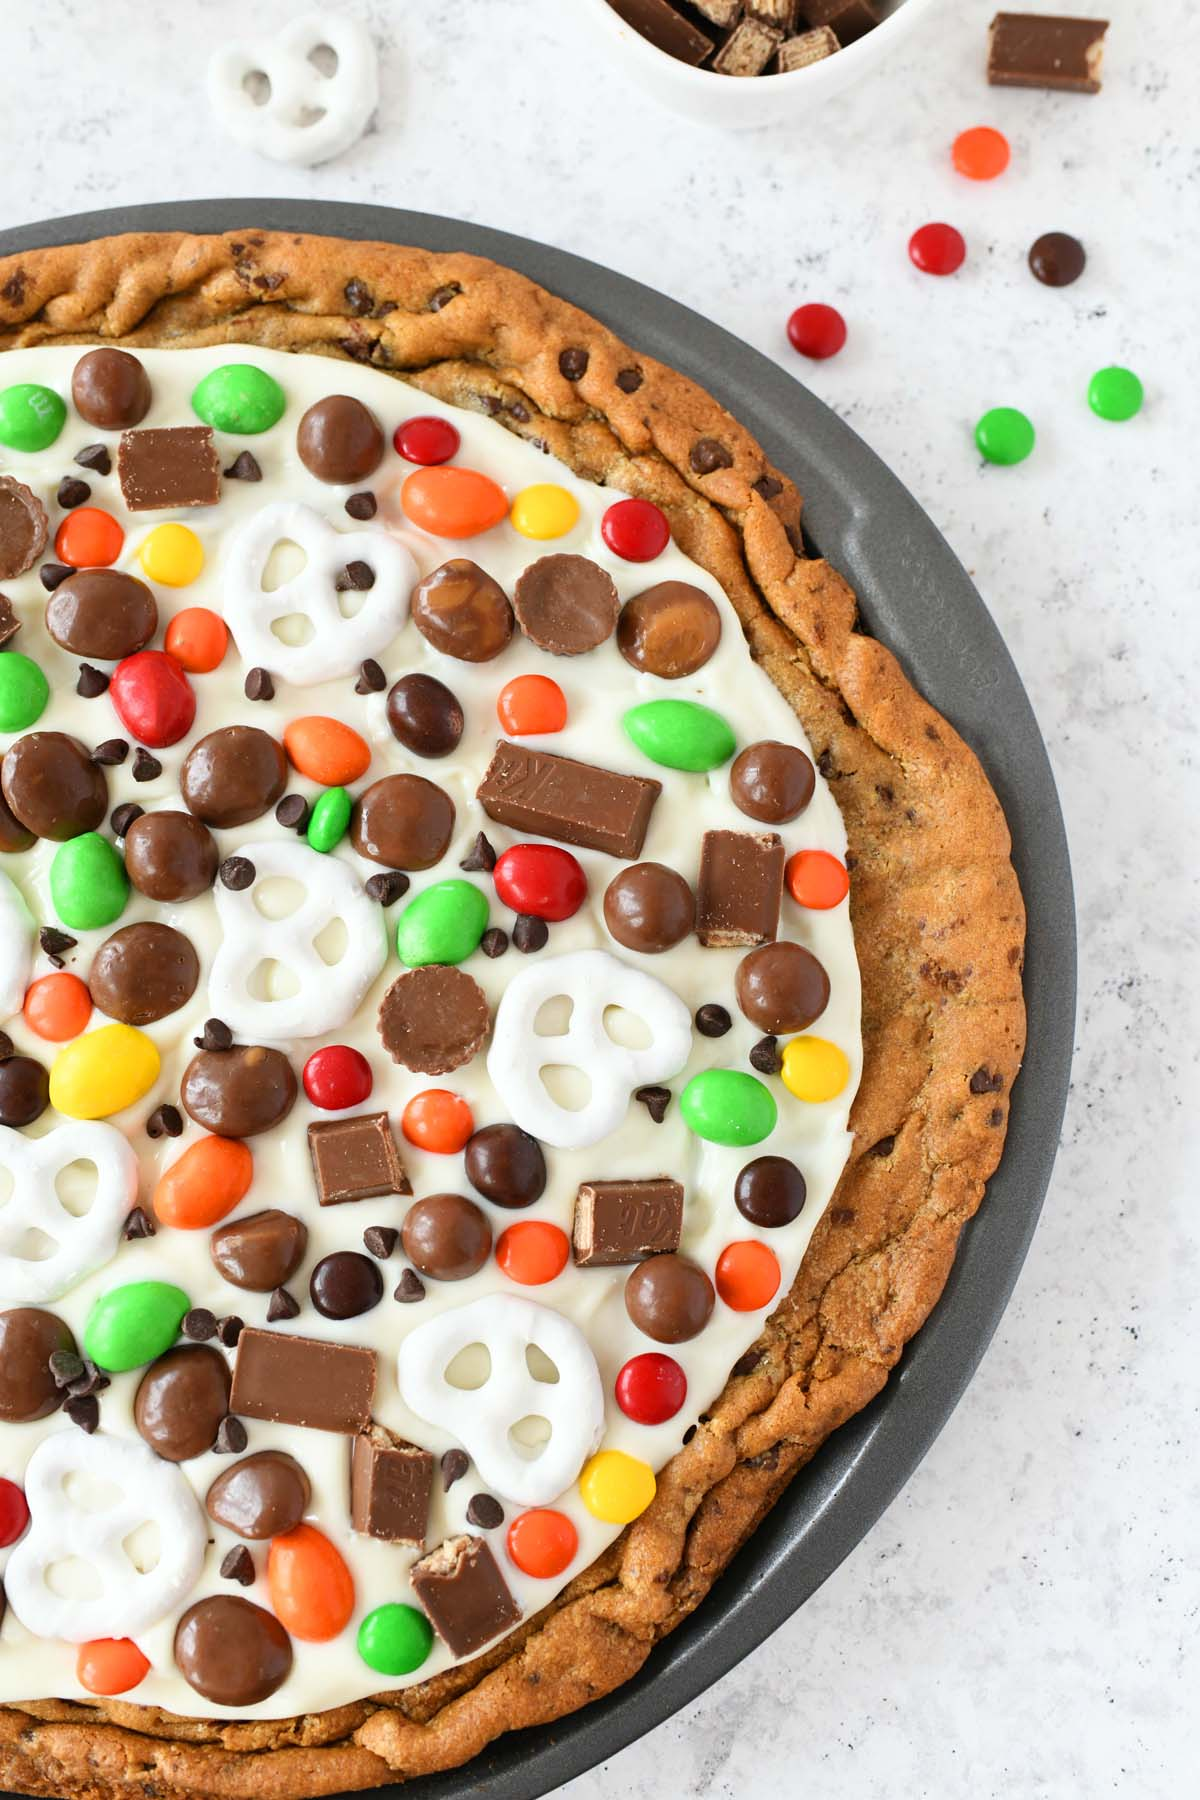 Chocolate Chip Cookie Pizza in a pan topped with white chocolate candy pieces.